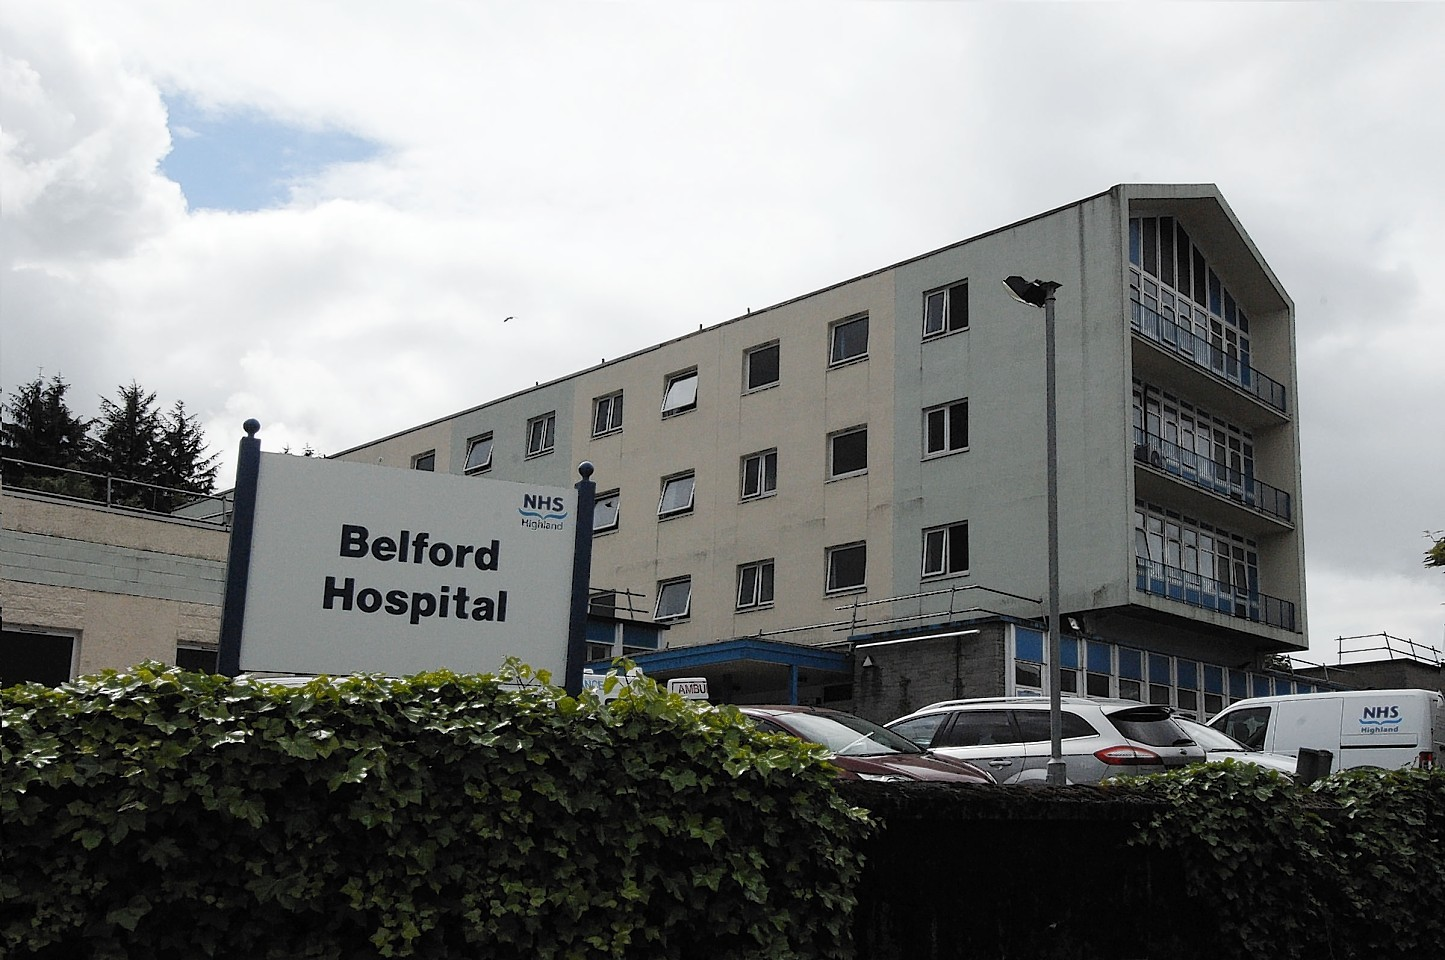 Belford Hospital in Fort William, where the woman was airlifted to.